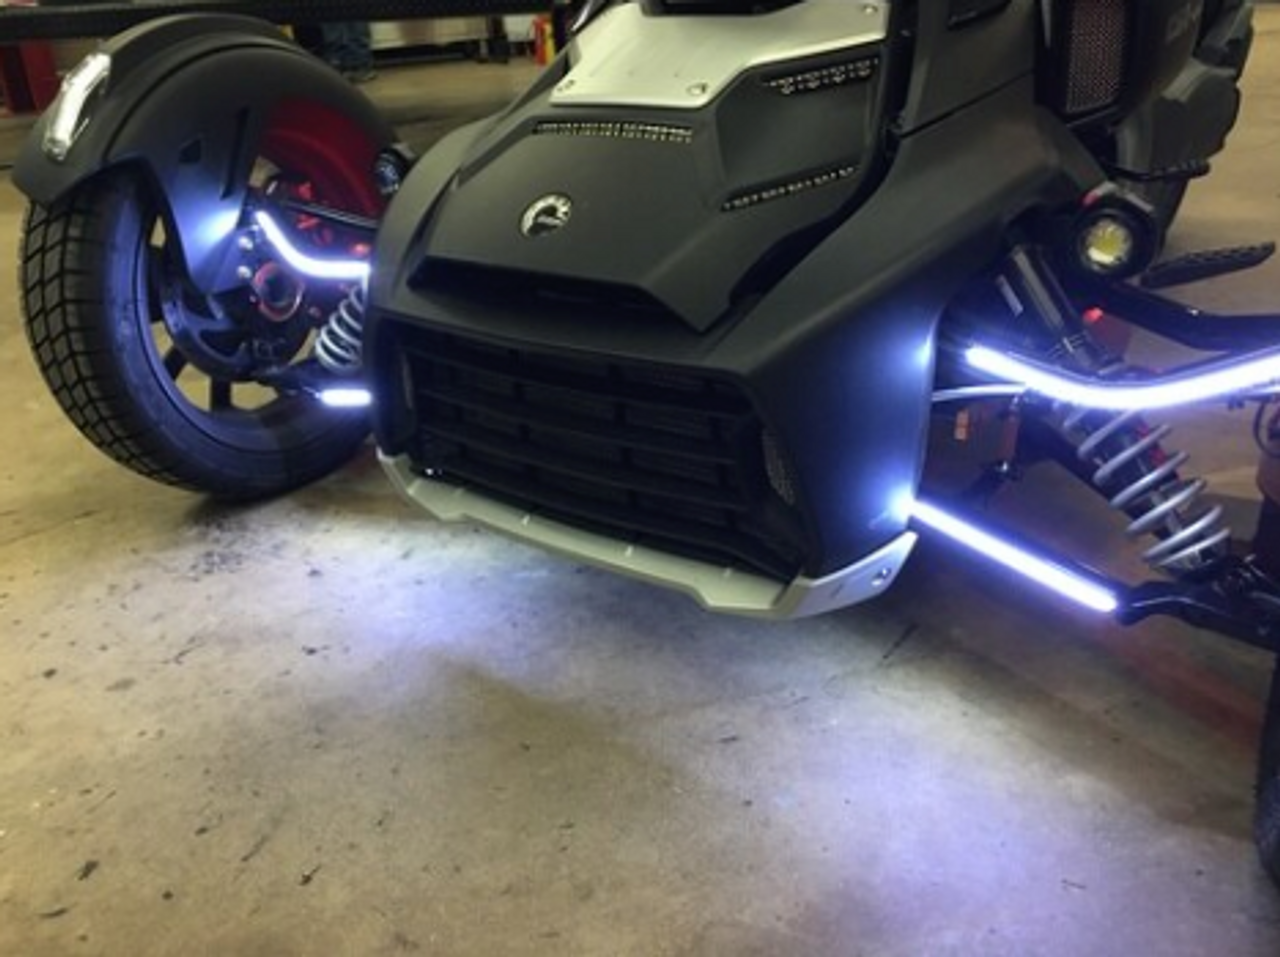 RYKER DOUBLE VISION A-ARM BRIGHT WHITE LED DAYTIME RUNNING LIGHTS FOR BOTH UPPER & LOWER A-ARMS. (SPY-391)